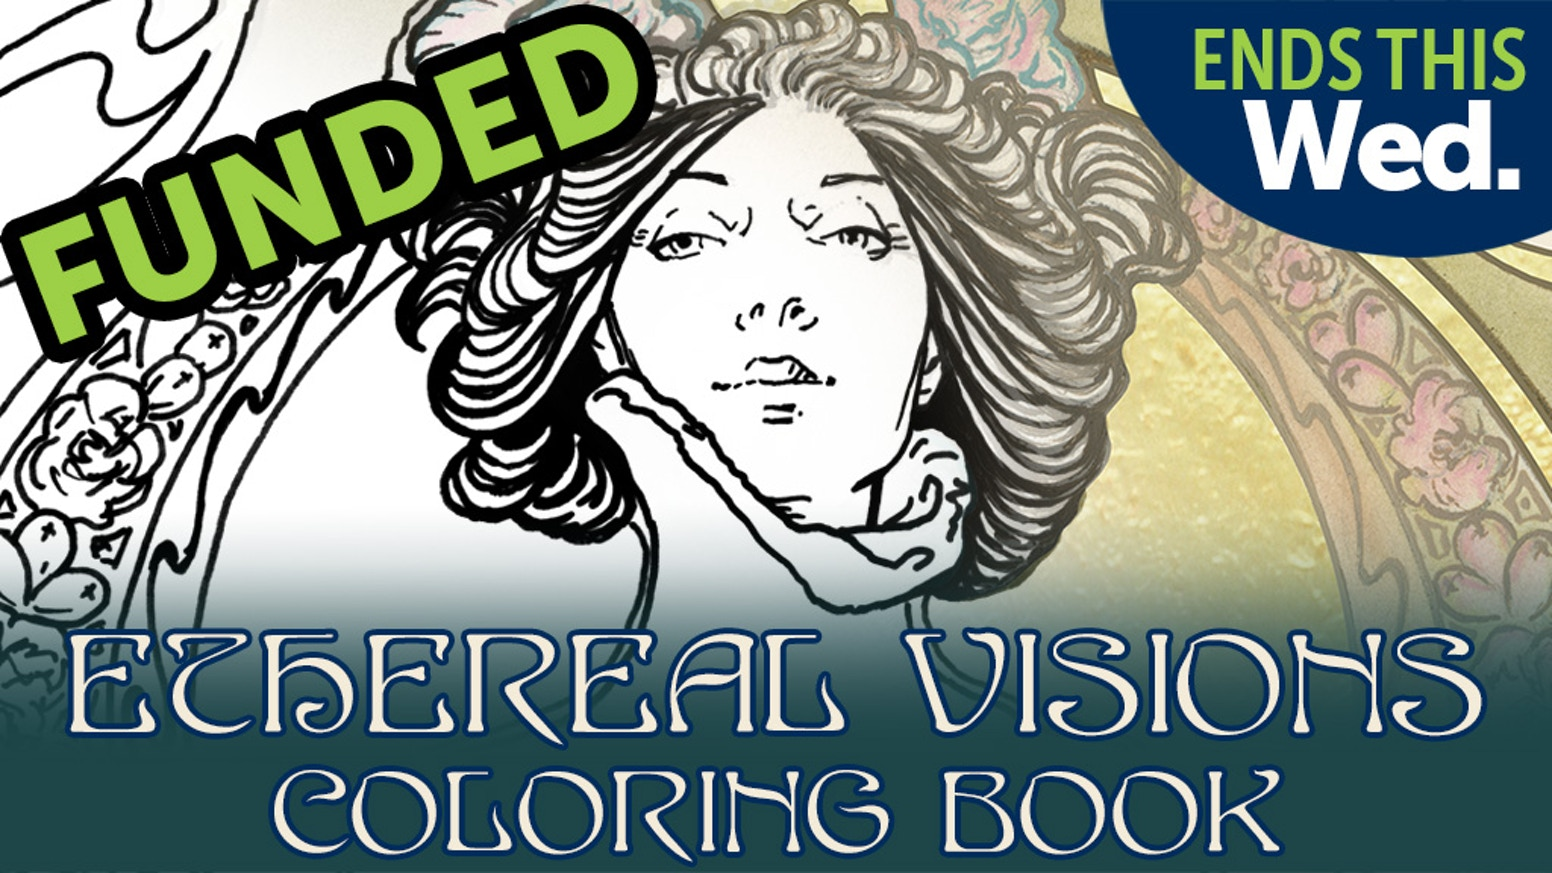 COLORING BOOK based on the Major Arcana from ETHEREAL VISIONS TAROT DECK by Art Nouveau artist Matt Hughes. Full Deck also available!